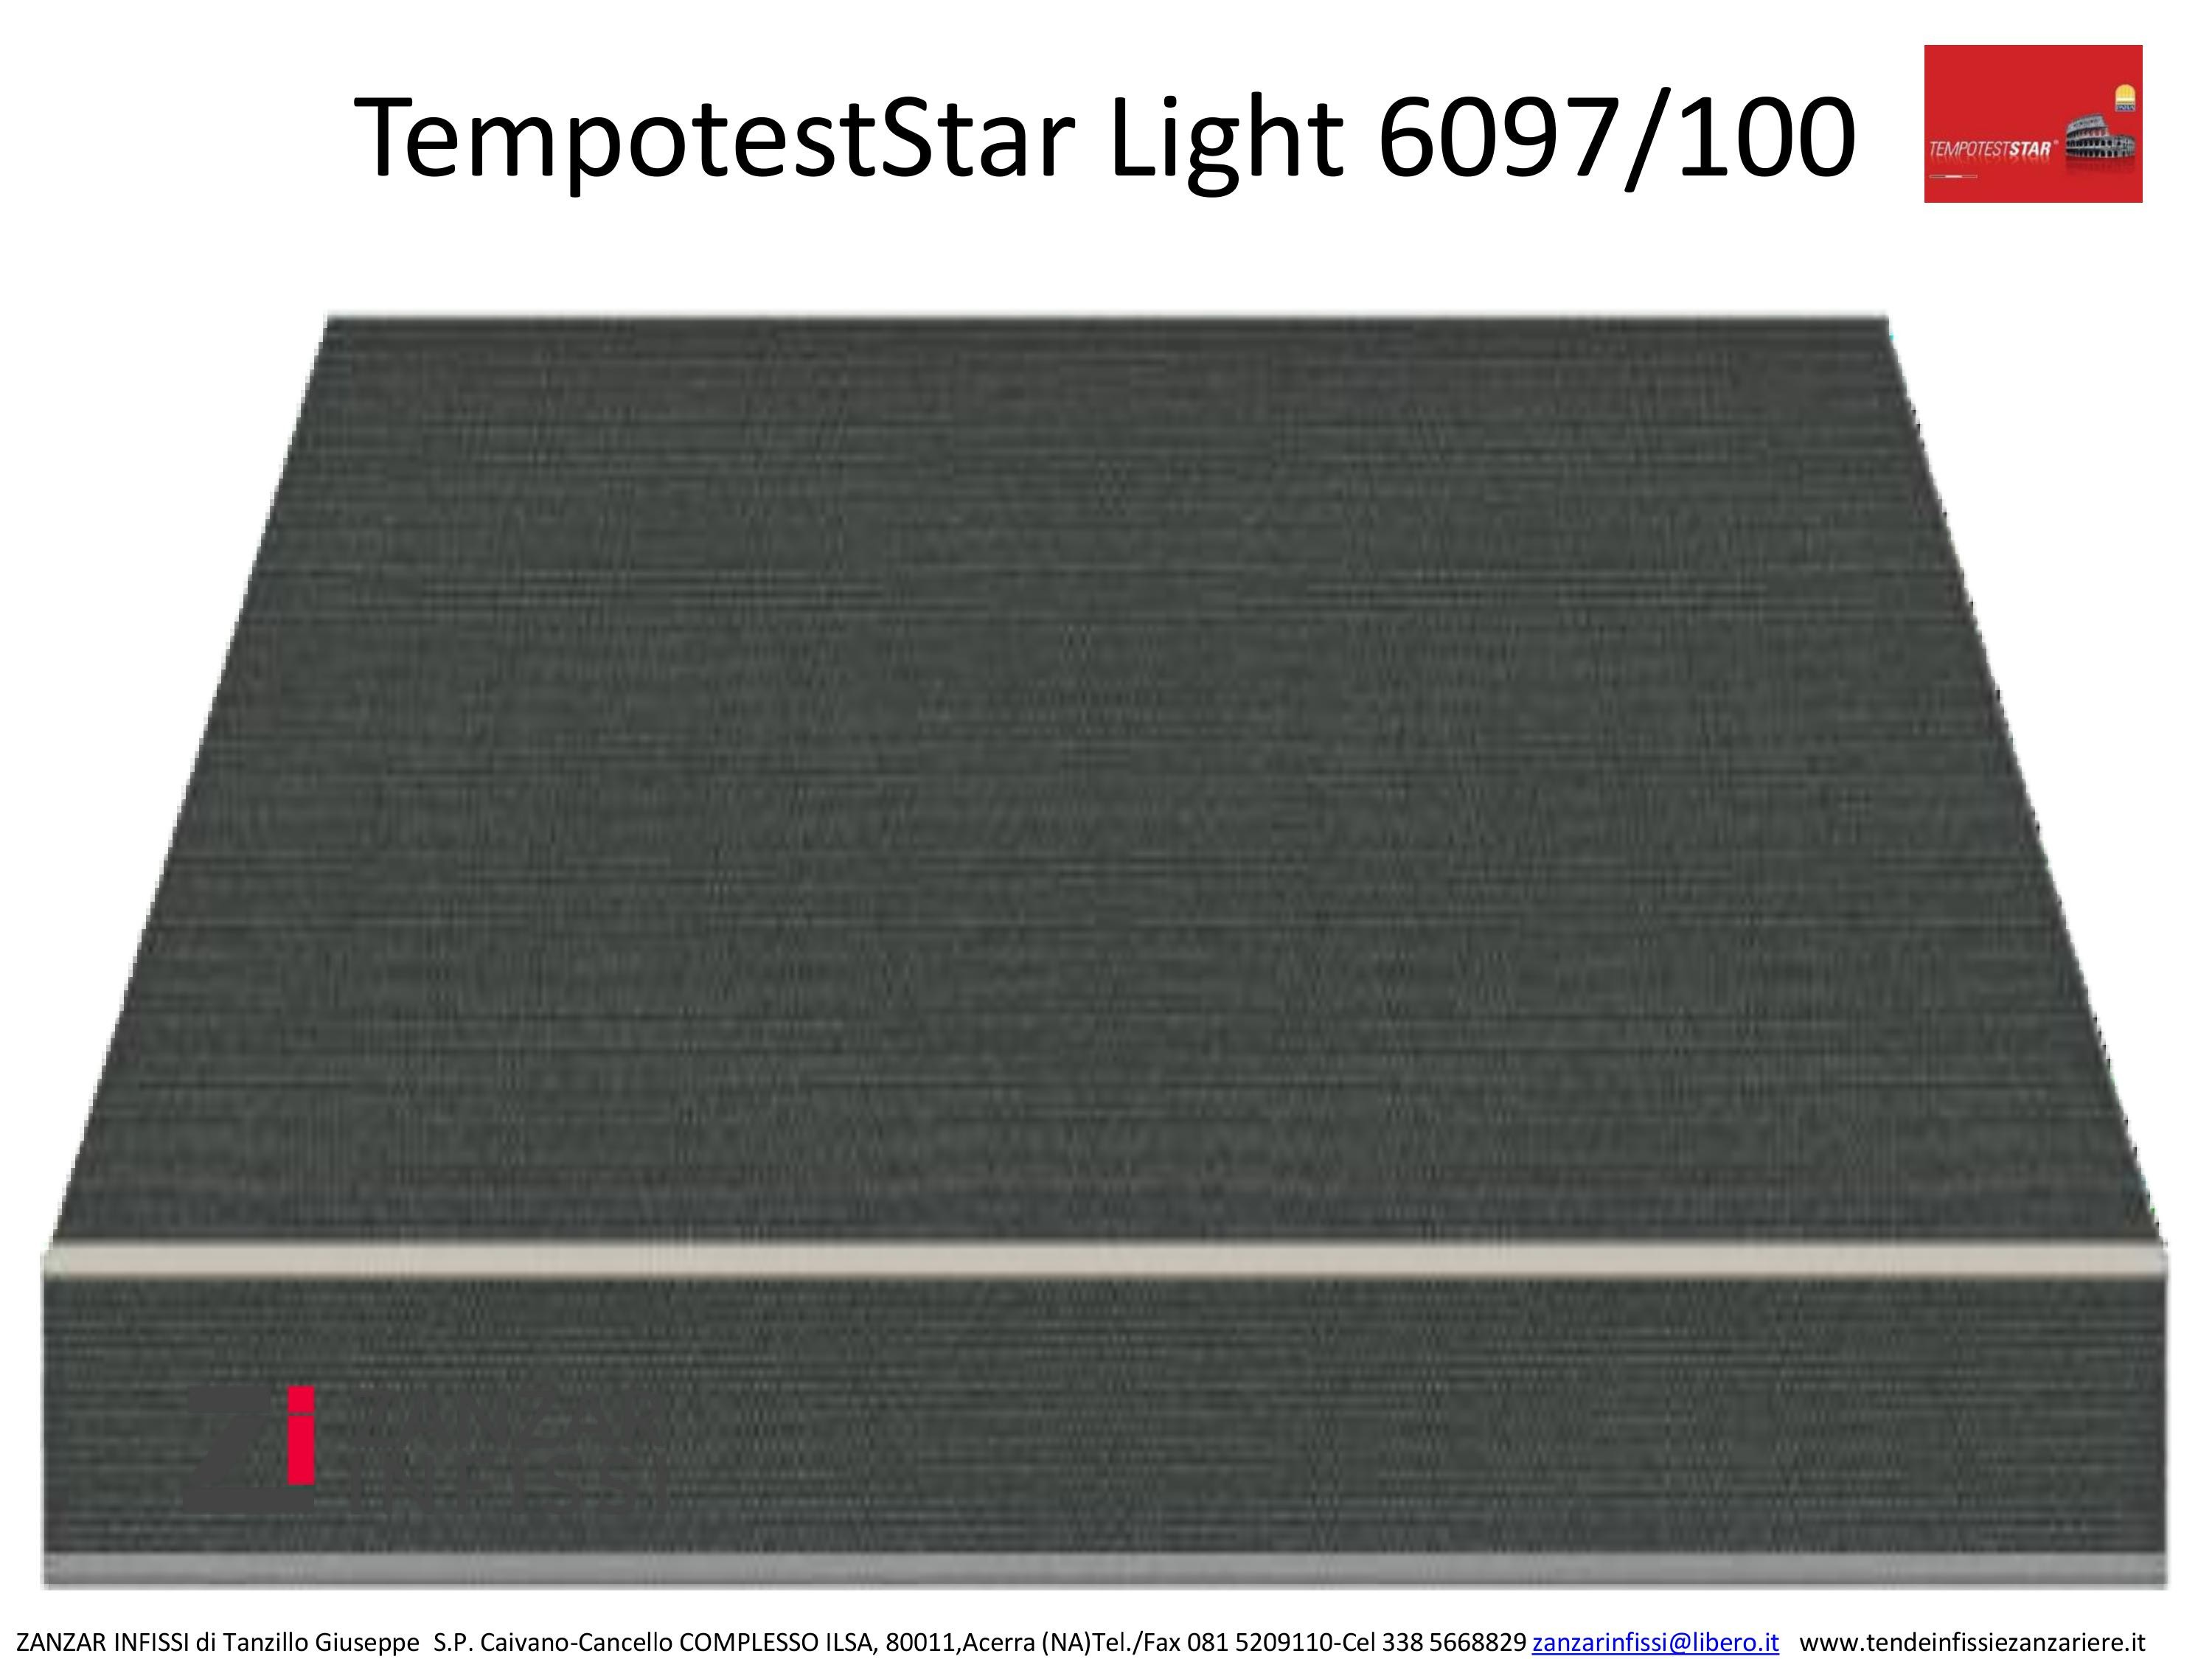 Tempotest star light 6097/100